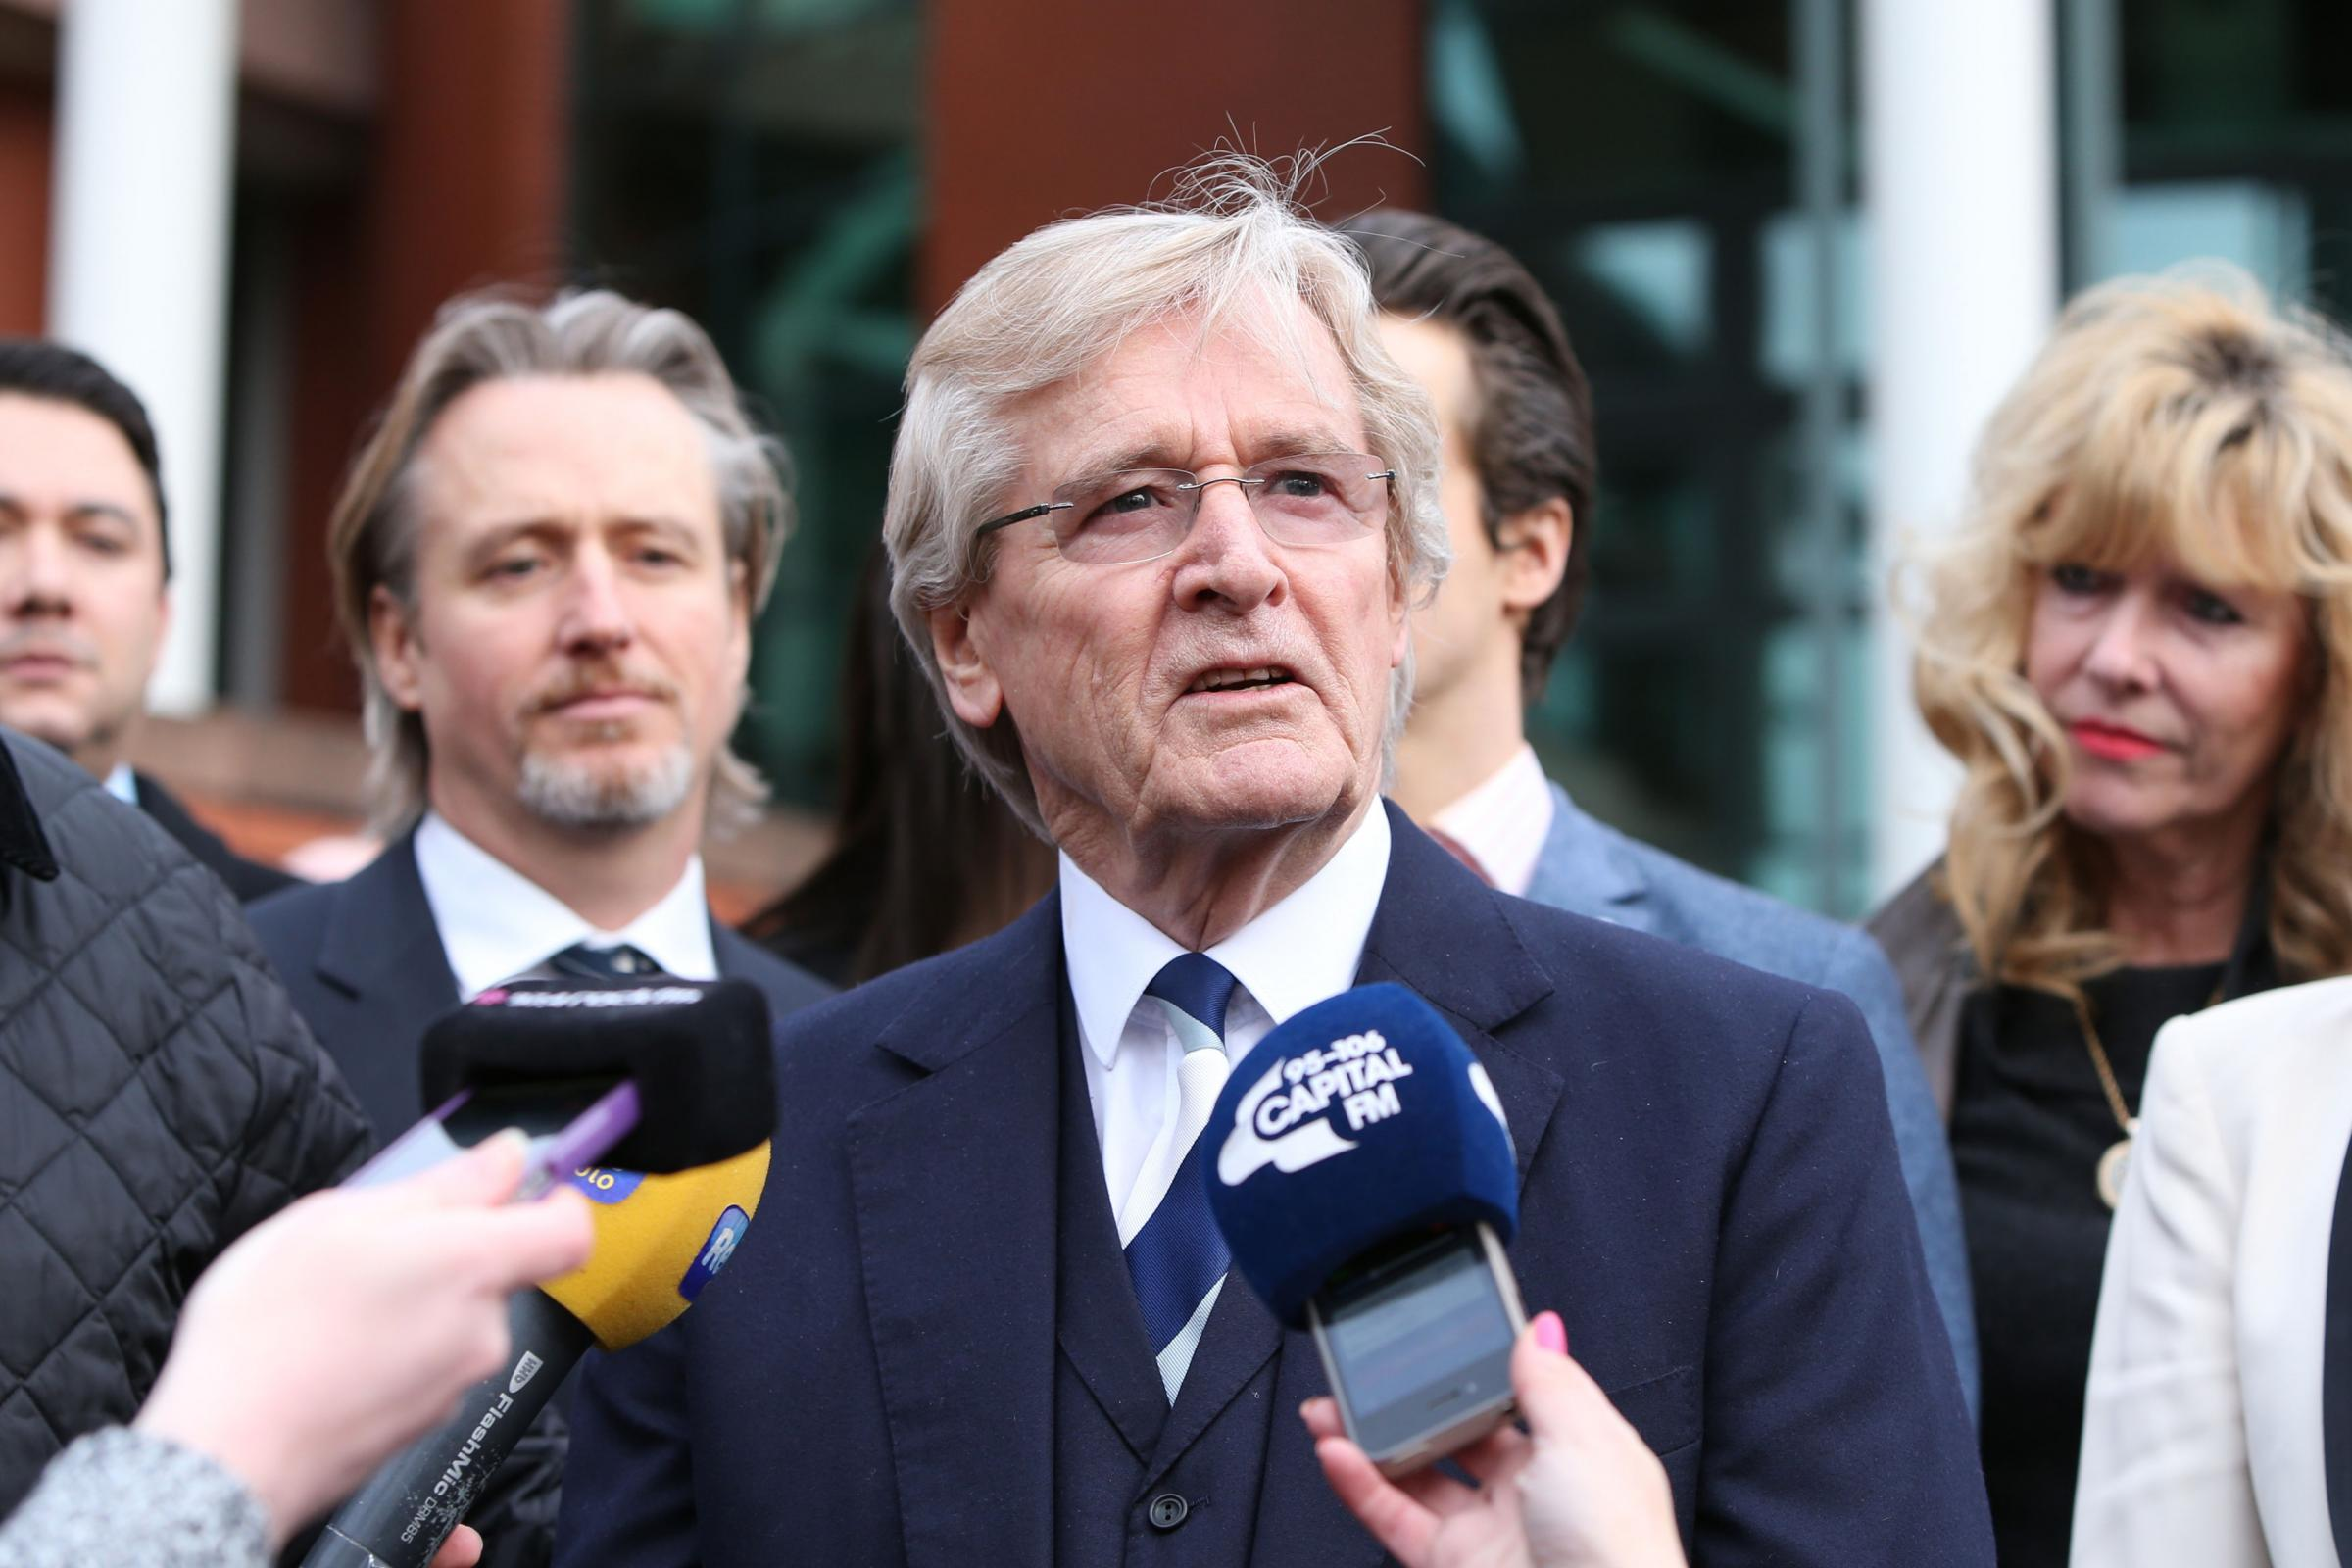 Coronation Street actor William Roache cleared of all sex charges